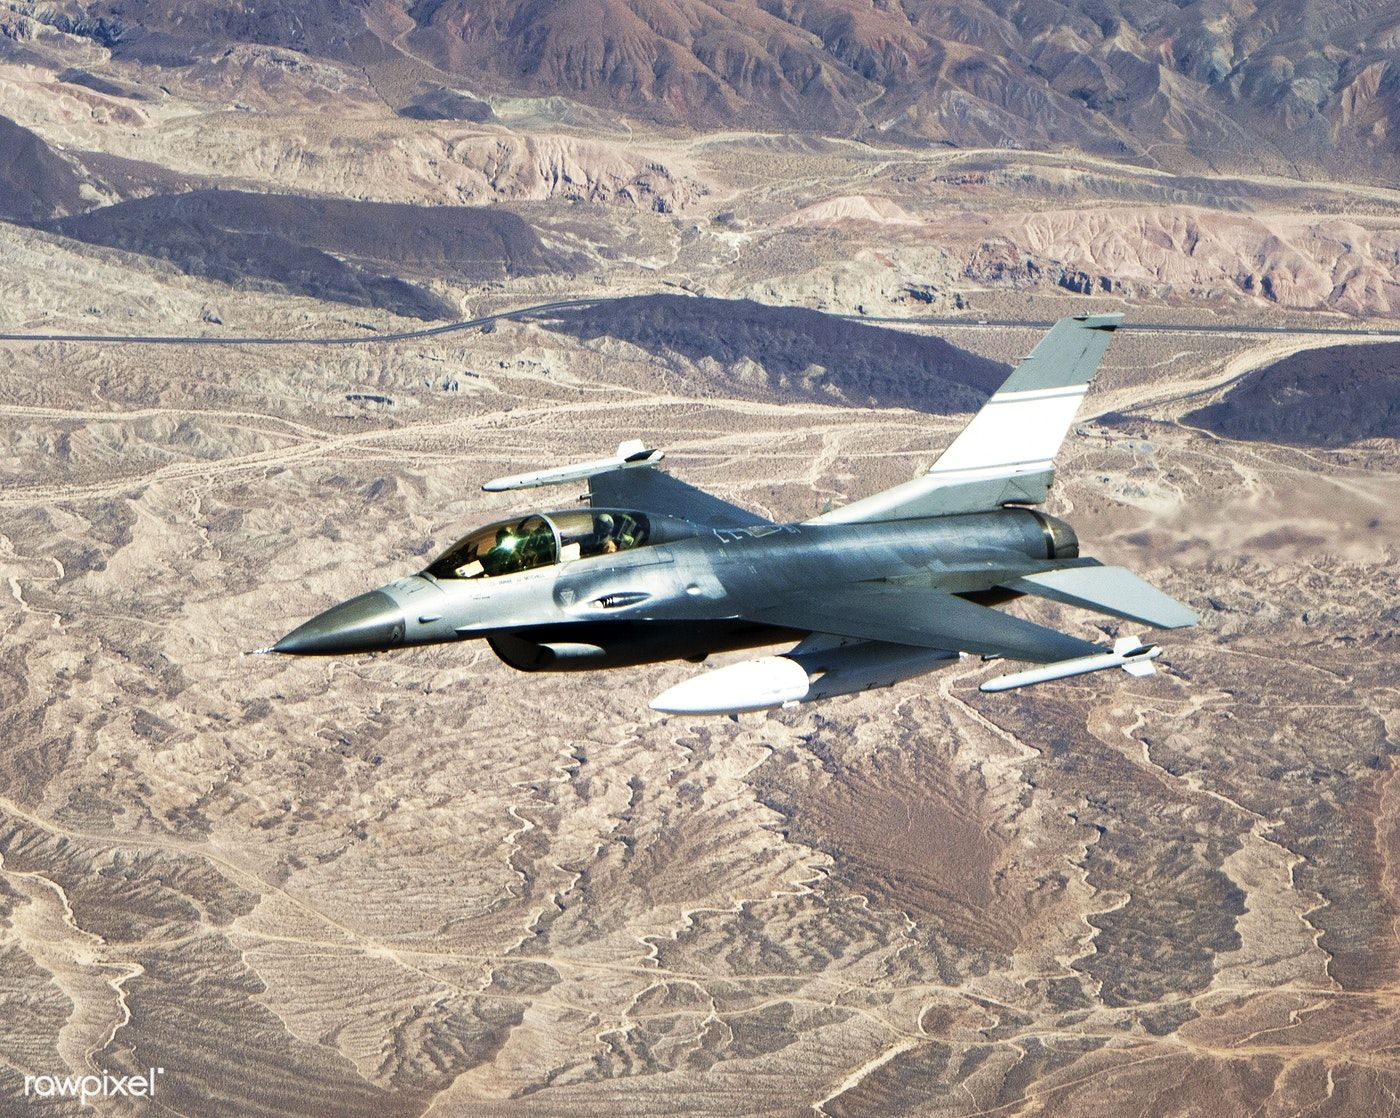 The U S  Air Force's F-16D Automatic Collision Avoidance